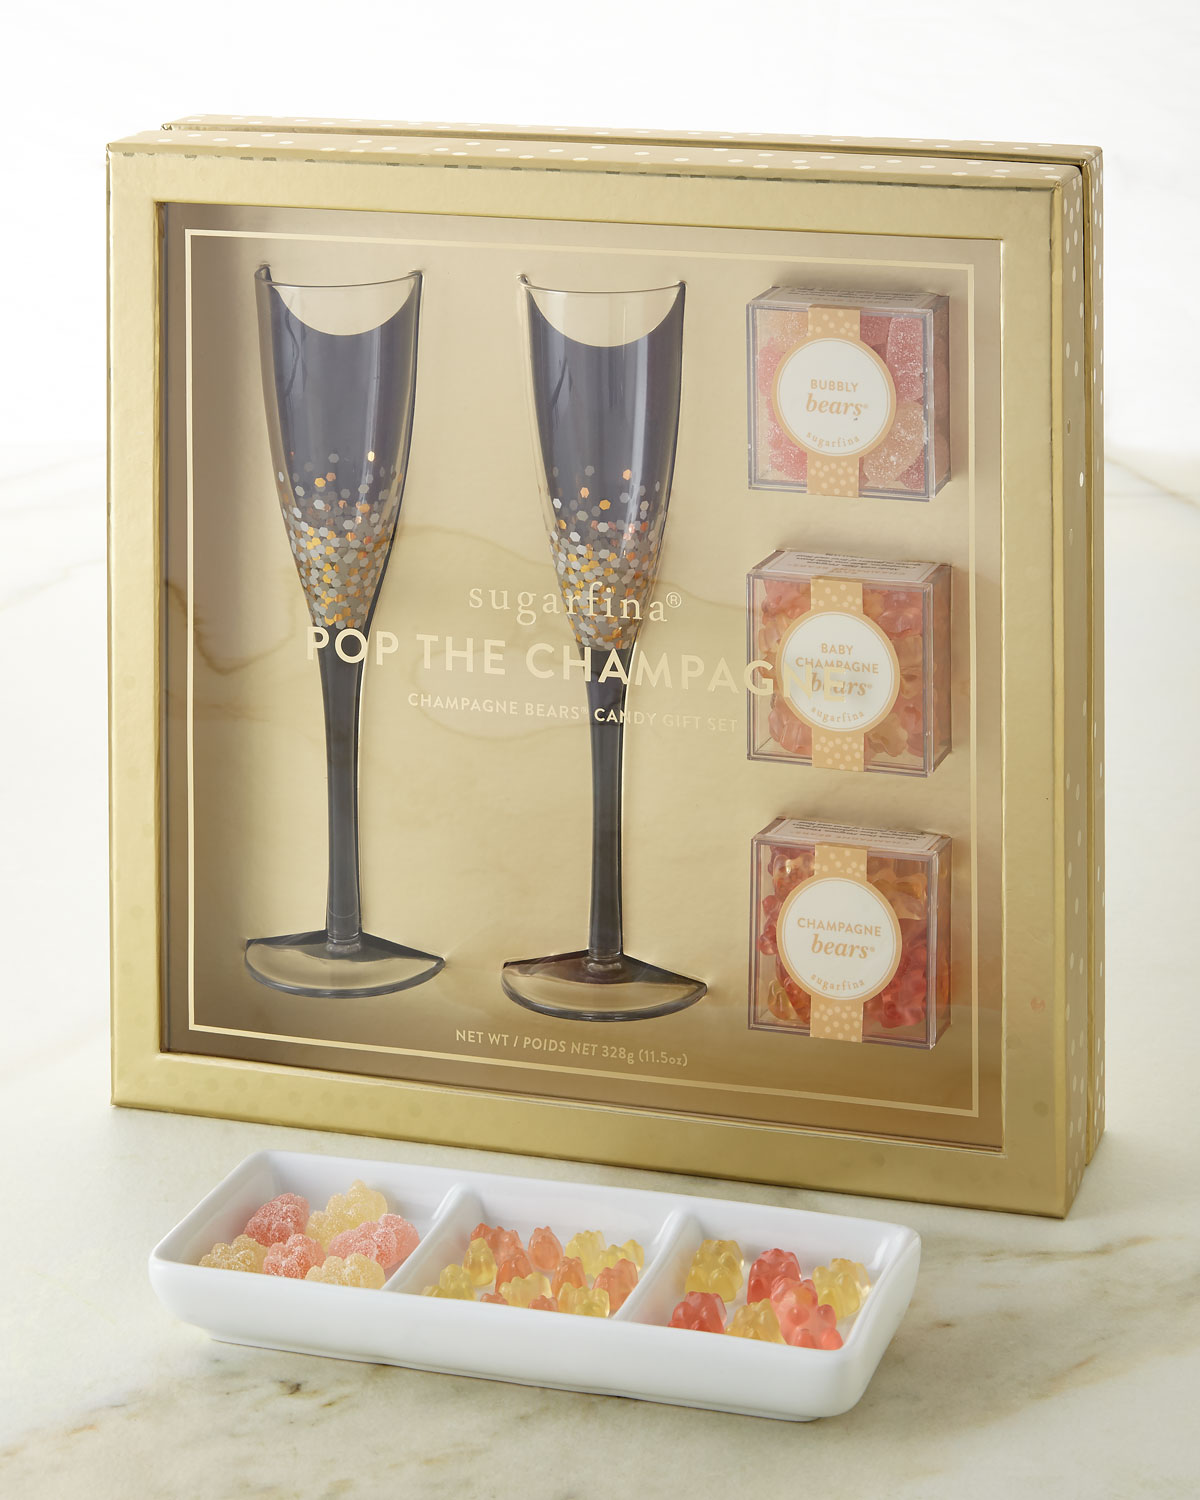 Sugarfina Pop The Champagne - Champagne Flutes & Candy Gift Set